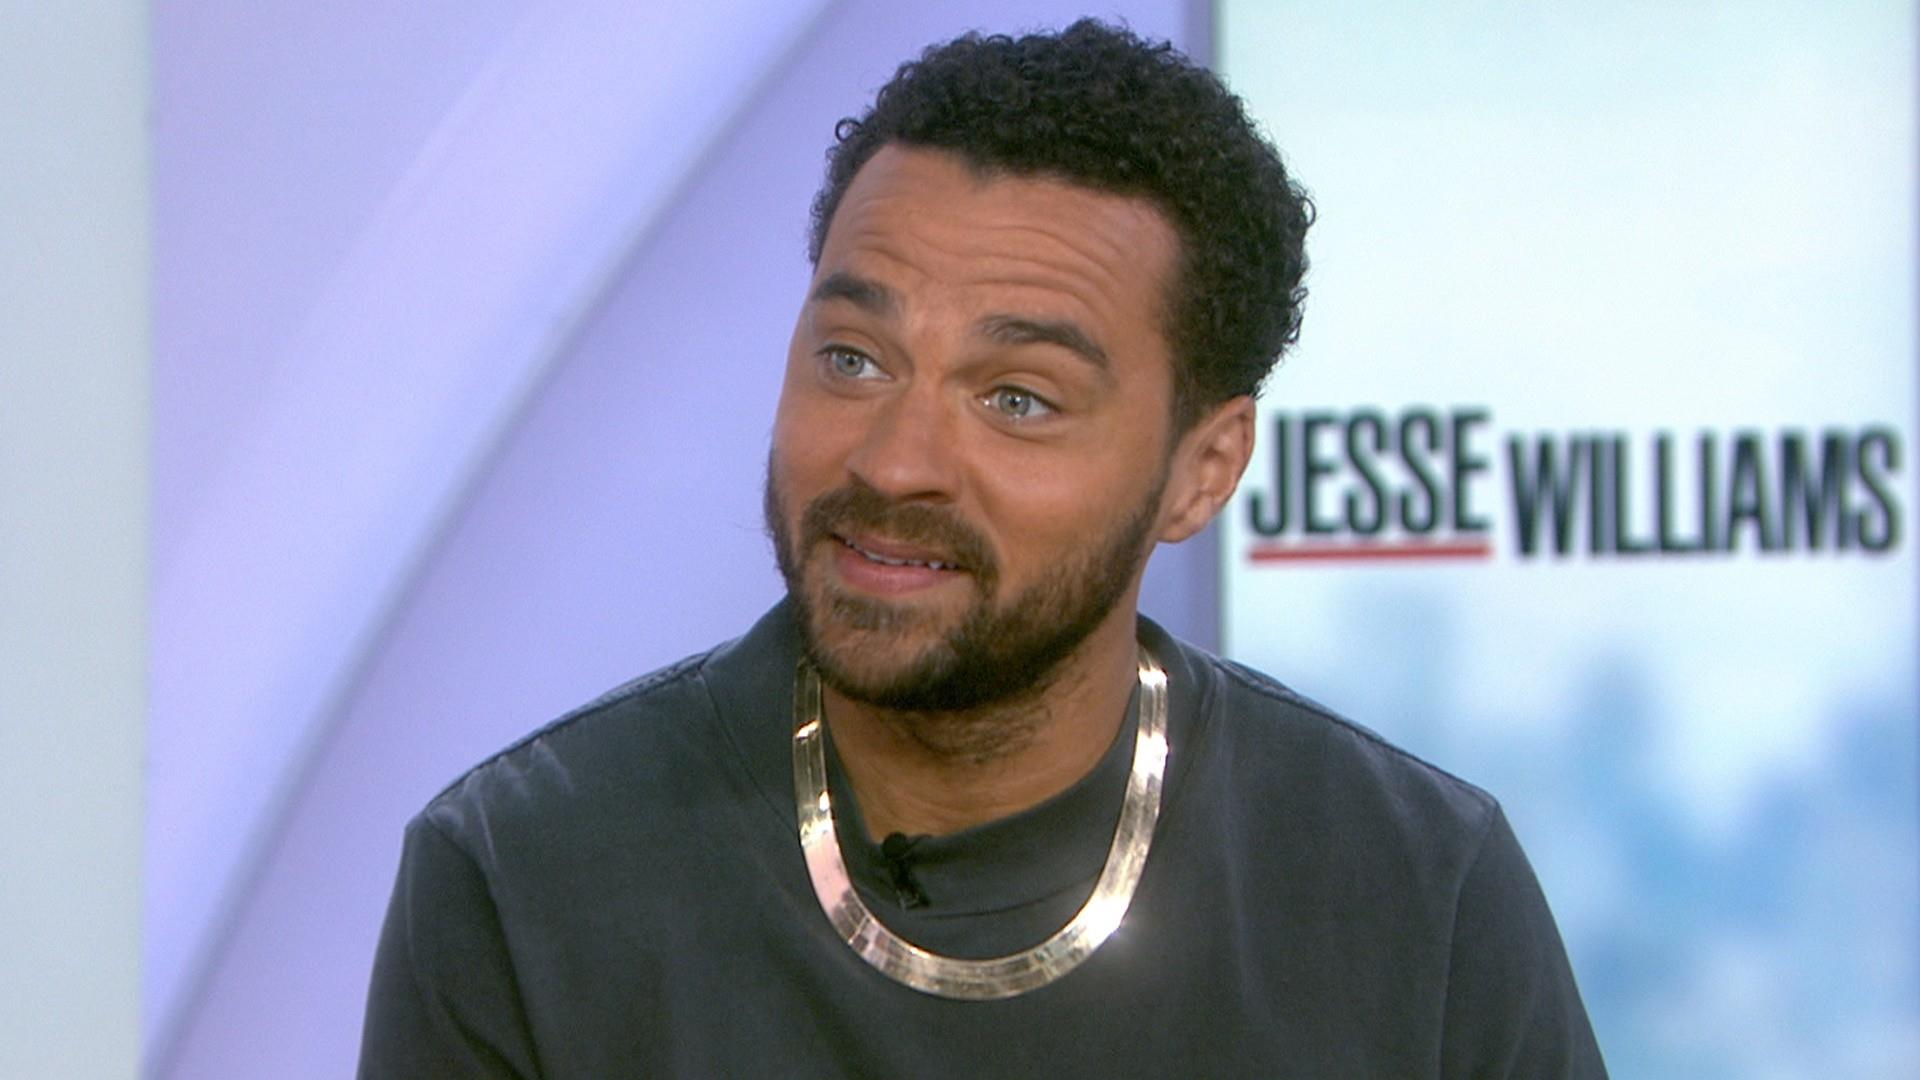 Jesse Williams Reflects On 10 Years With Greys Anatomy